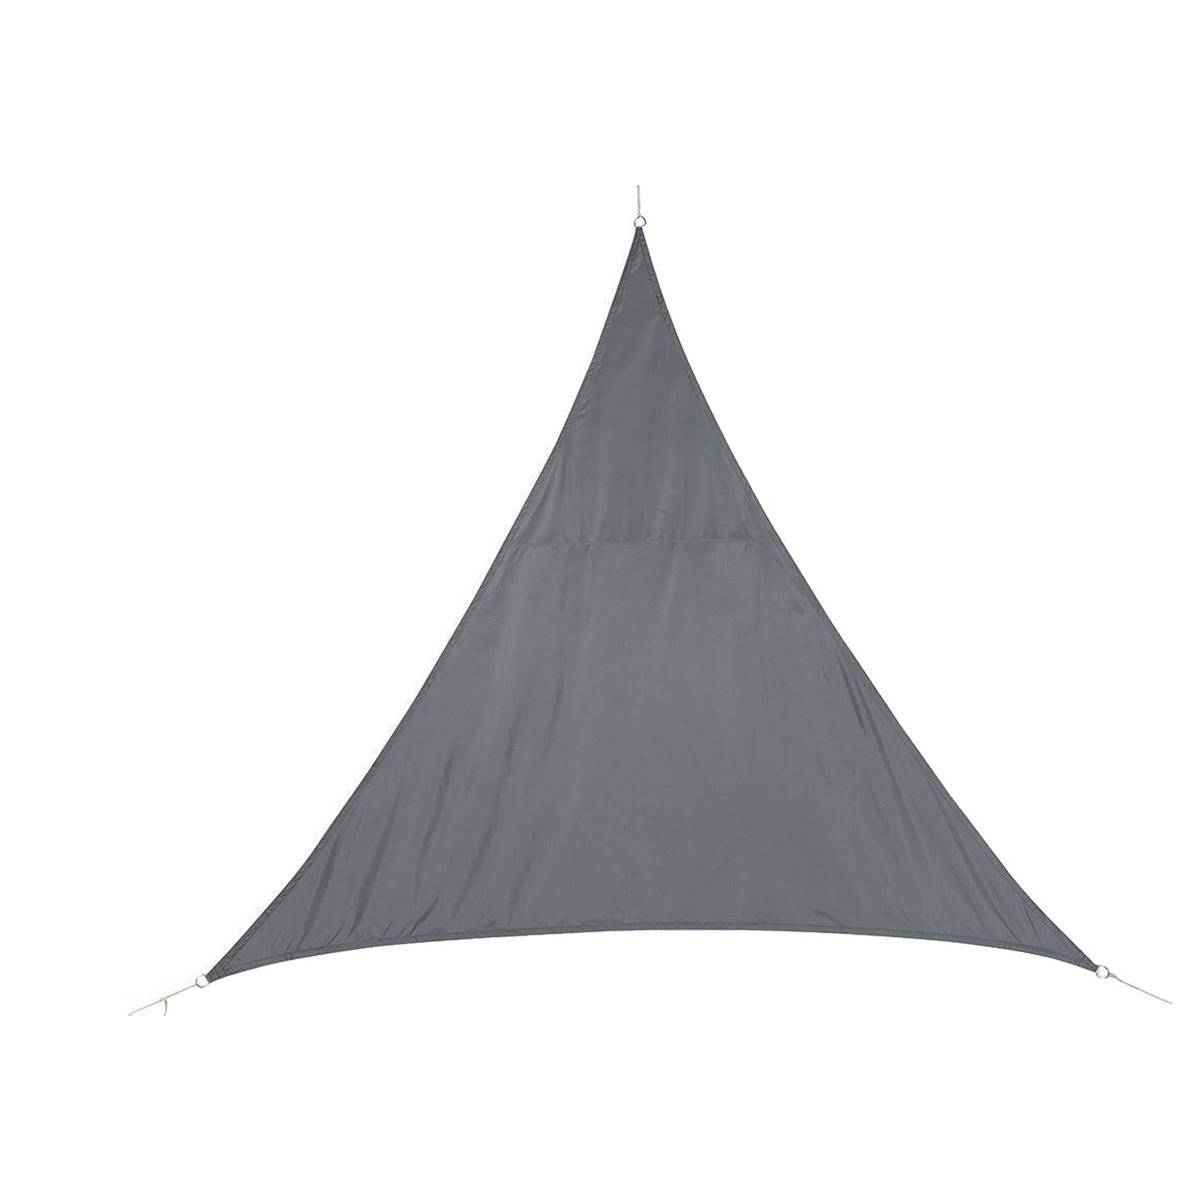 Hespéride Voile d'ombrage triangulaire Curacao Gris Jardin 2 x 2 x 2 m - Polyester